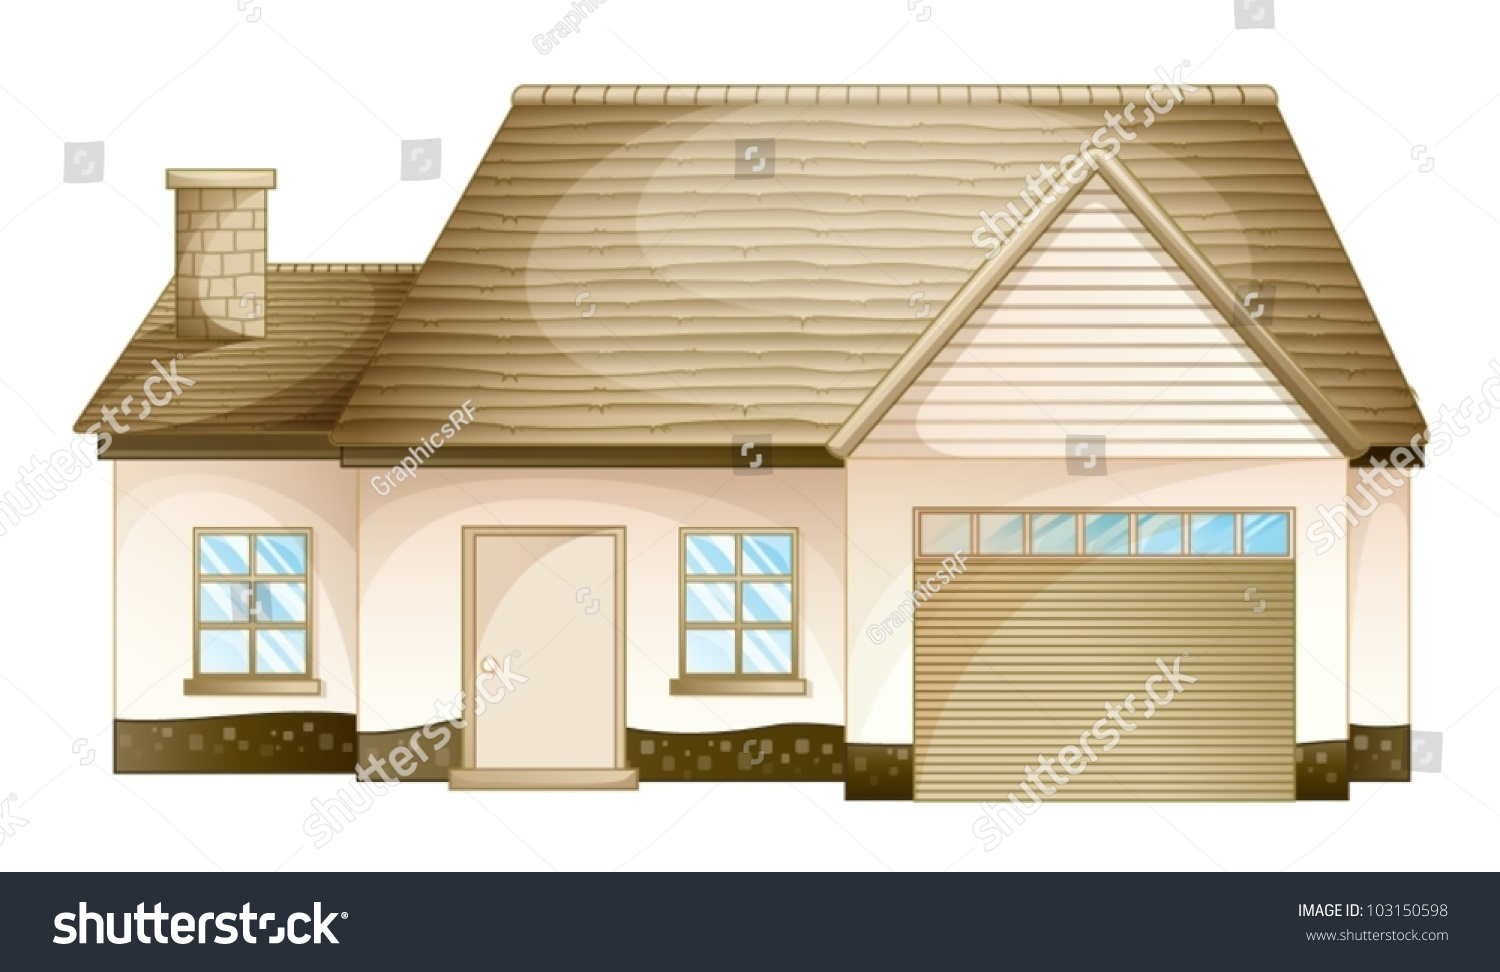 Illustration simple house front view stock vector for Simple house front view